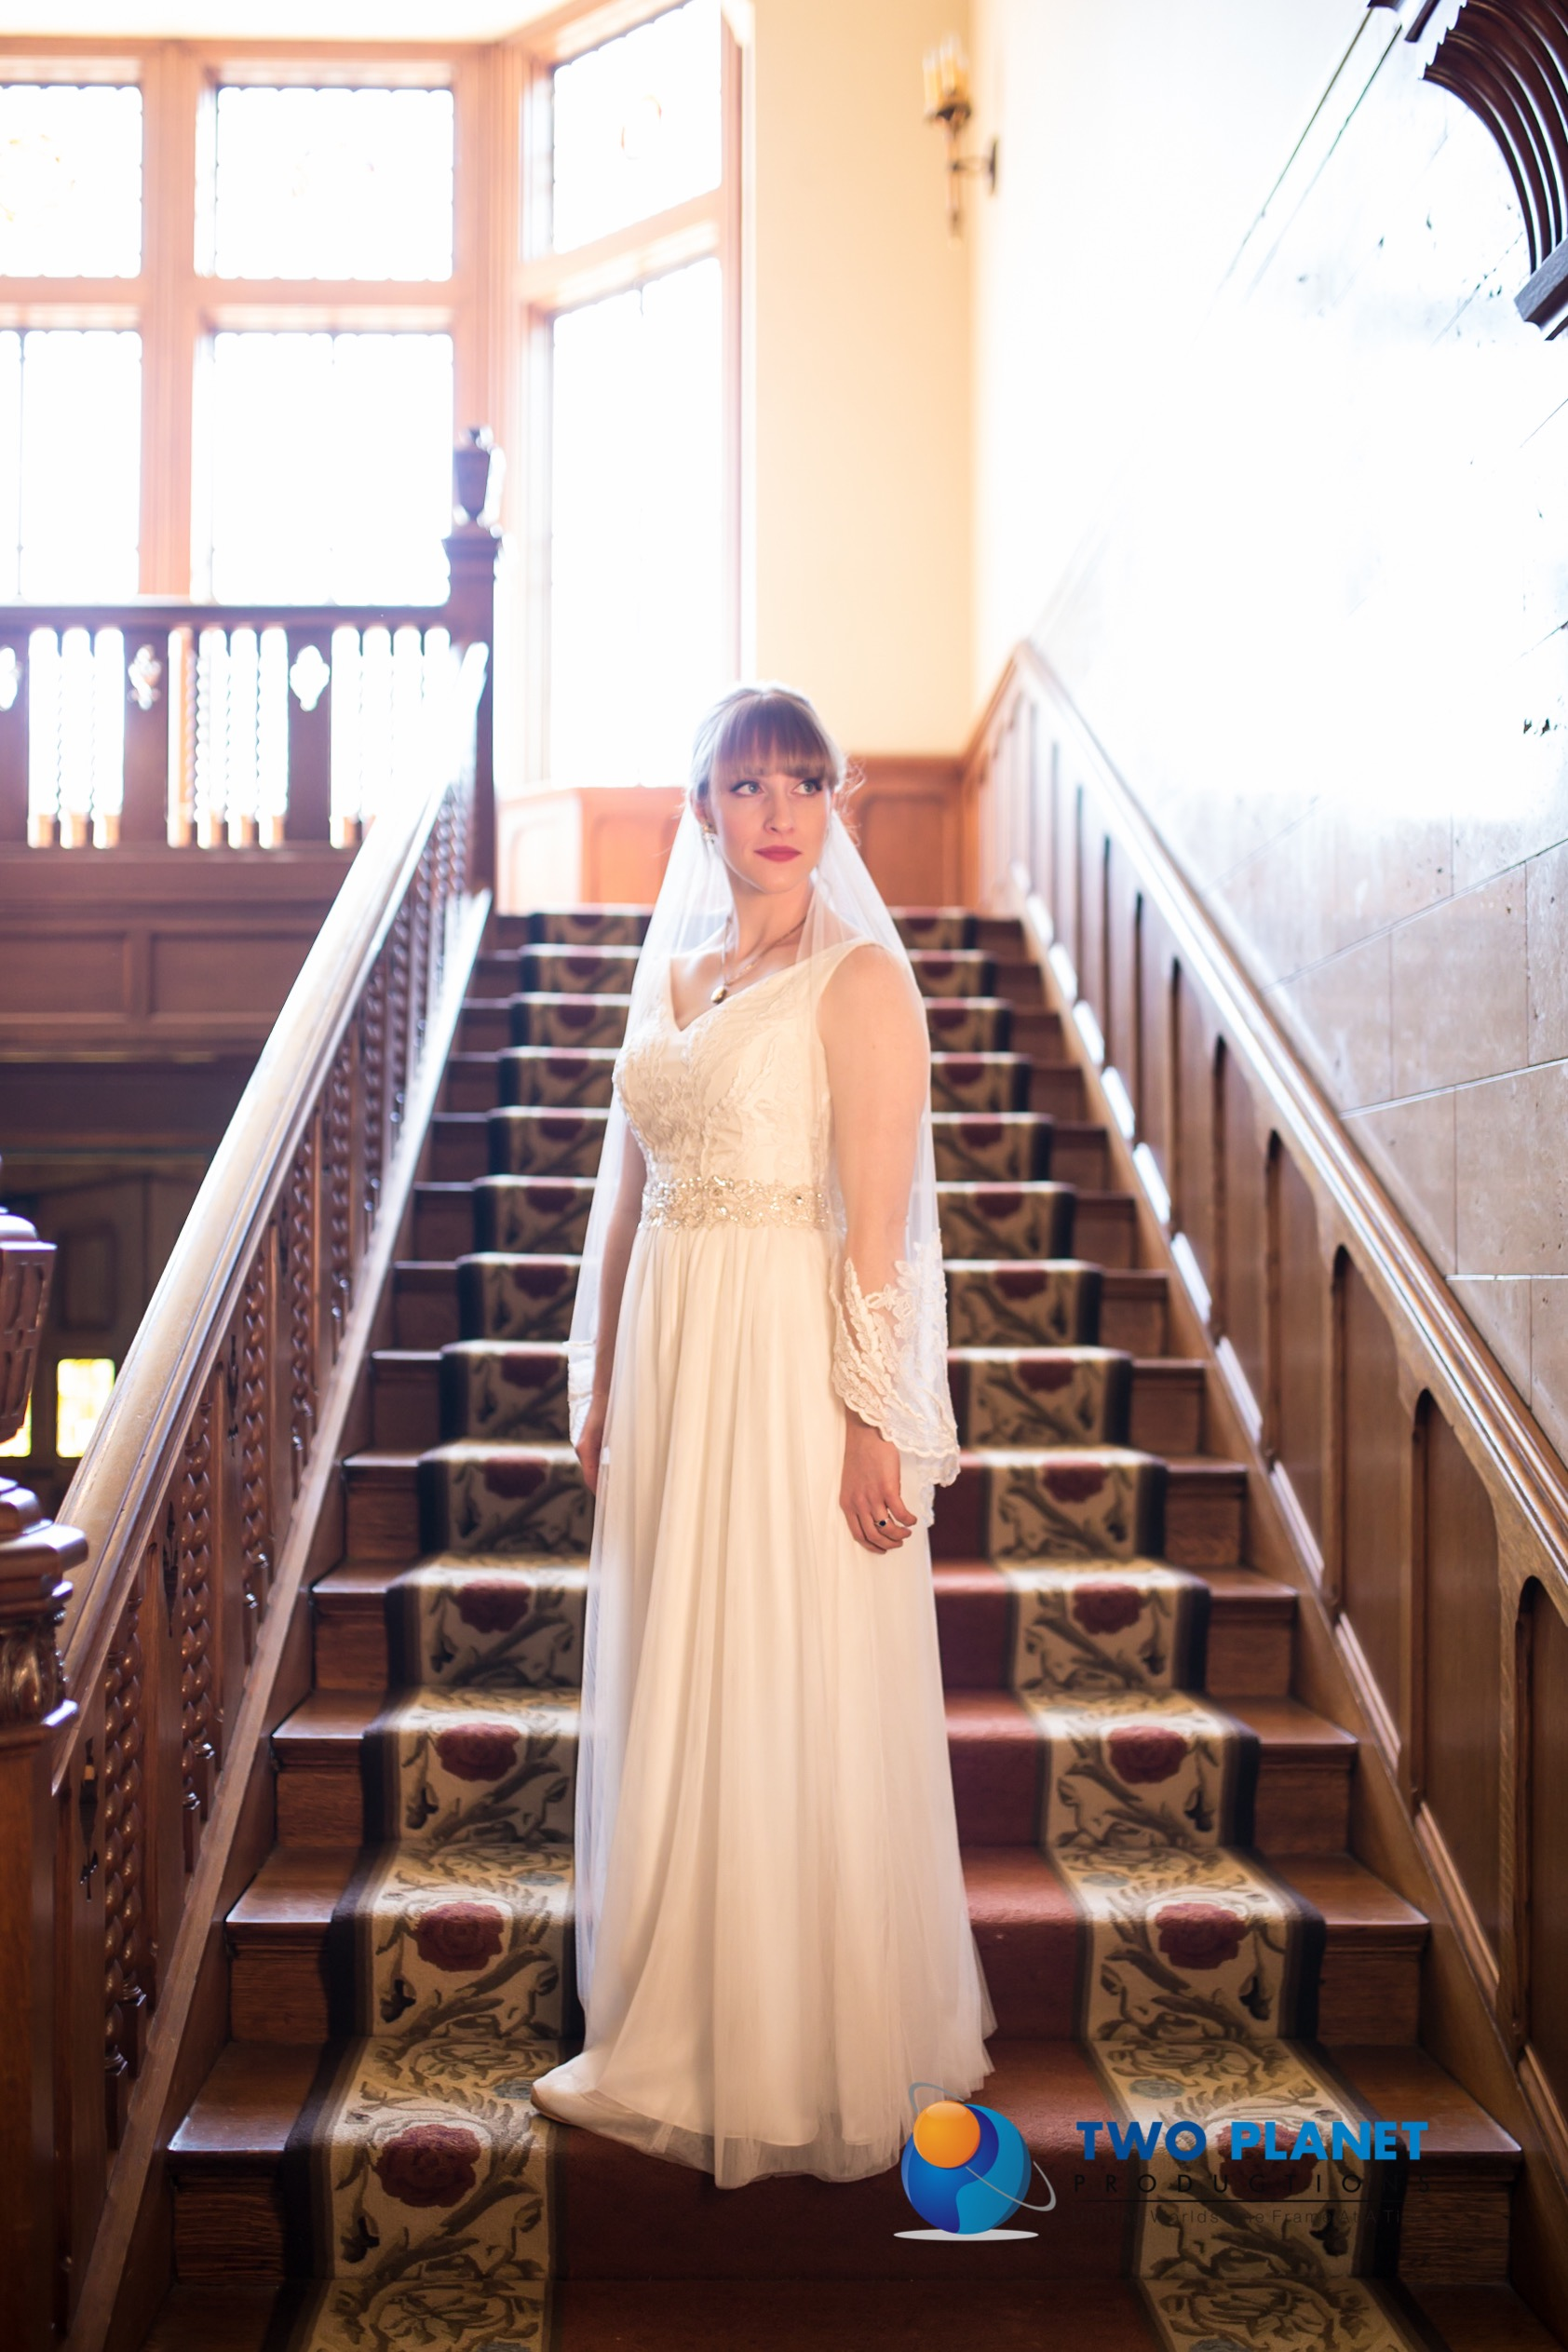 Bridal Couture by Sonni custom lace wedding dress Amelia stairway